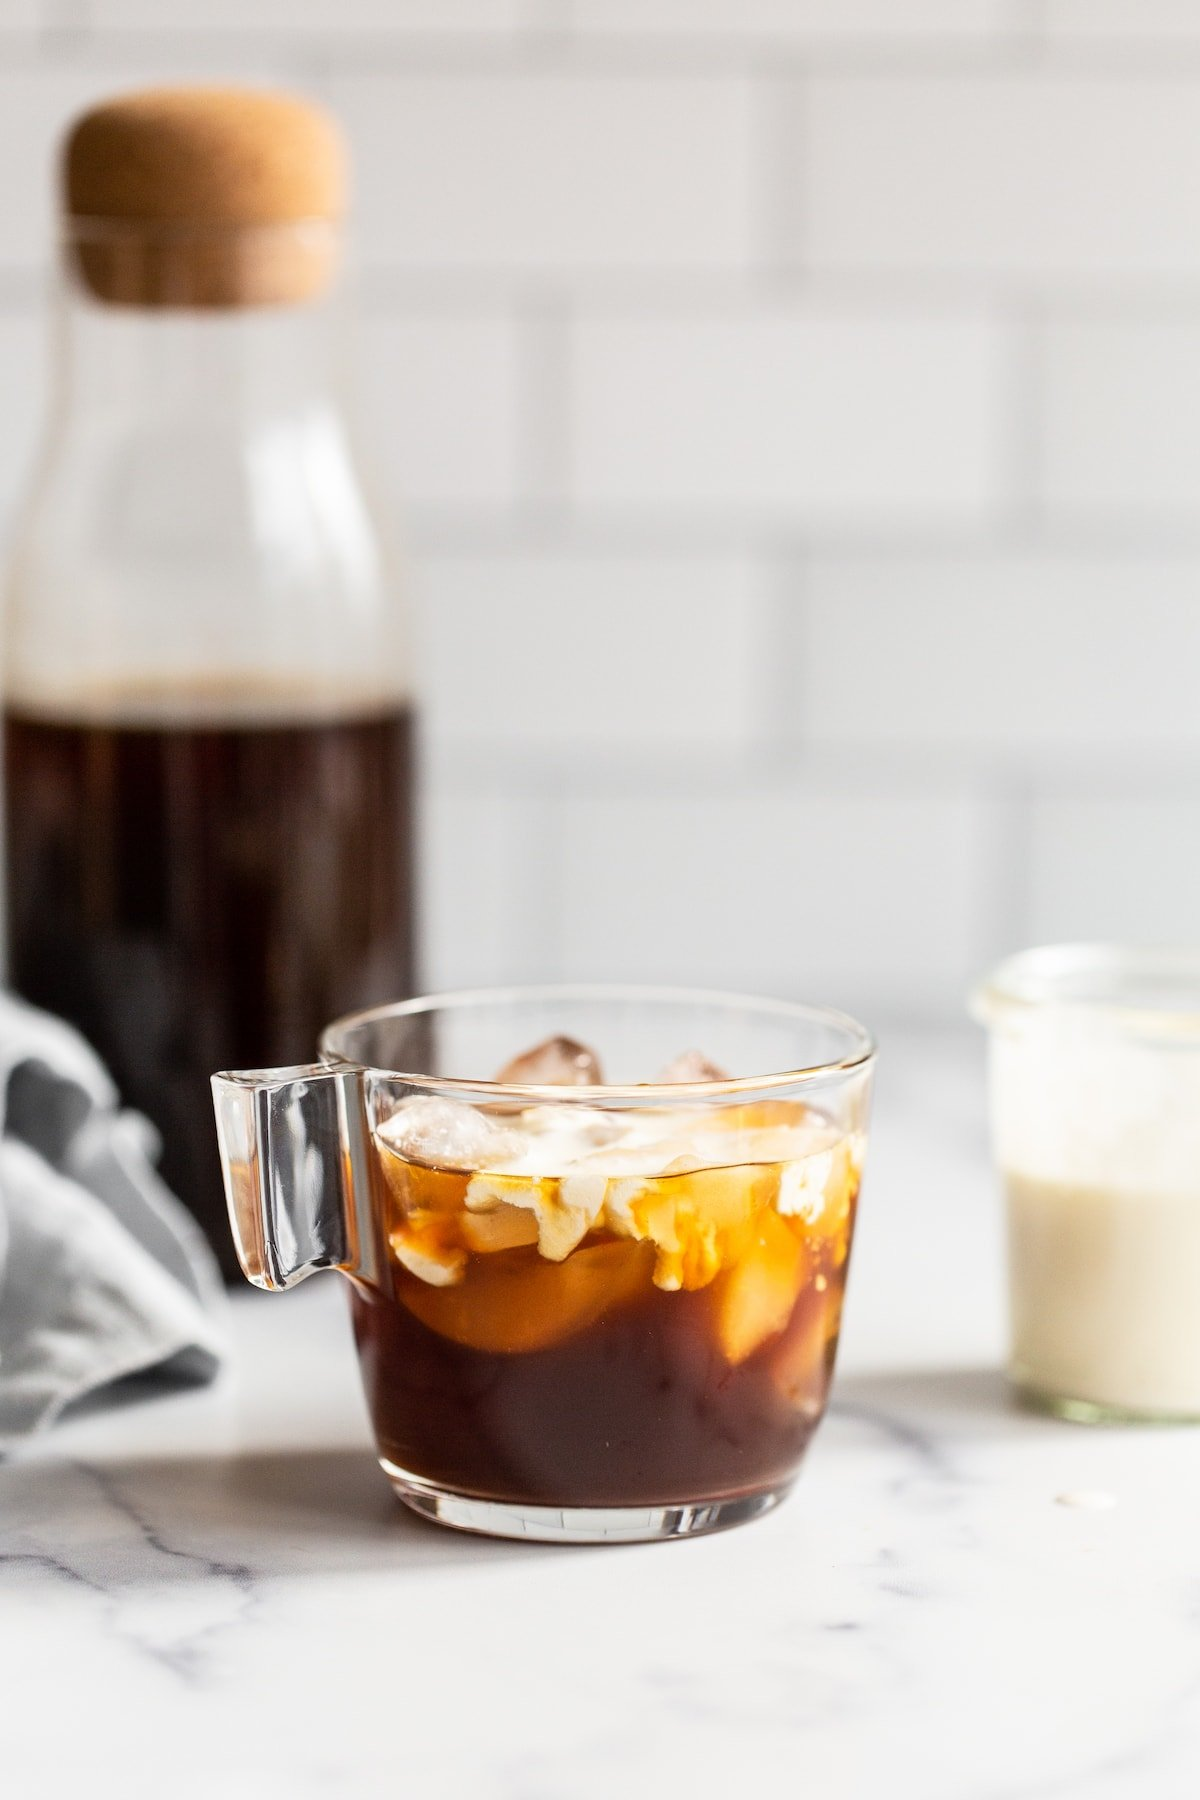 Glass jar with cold brew and cream mixing into the coffee.